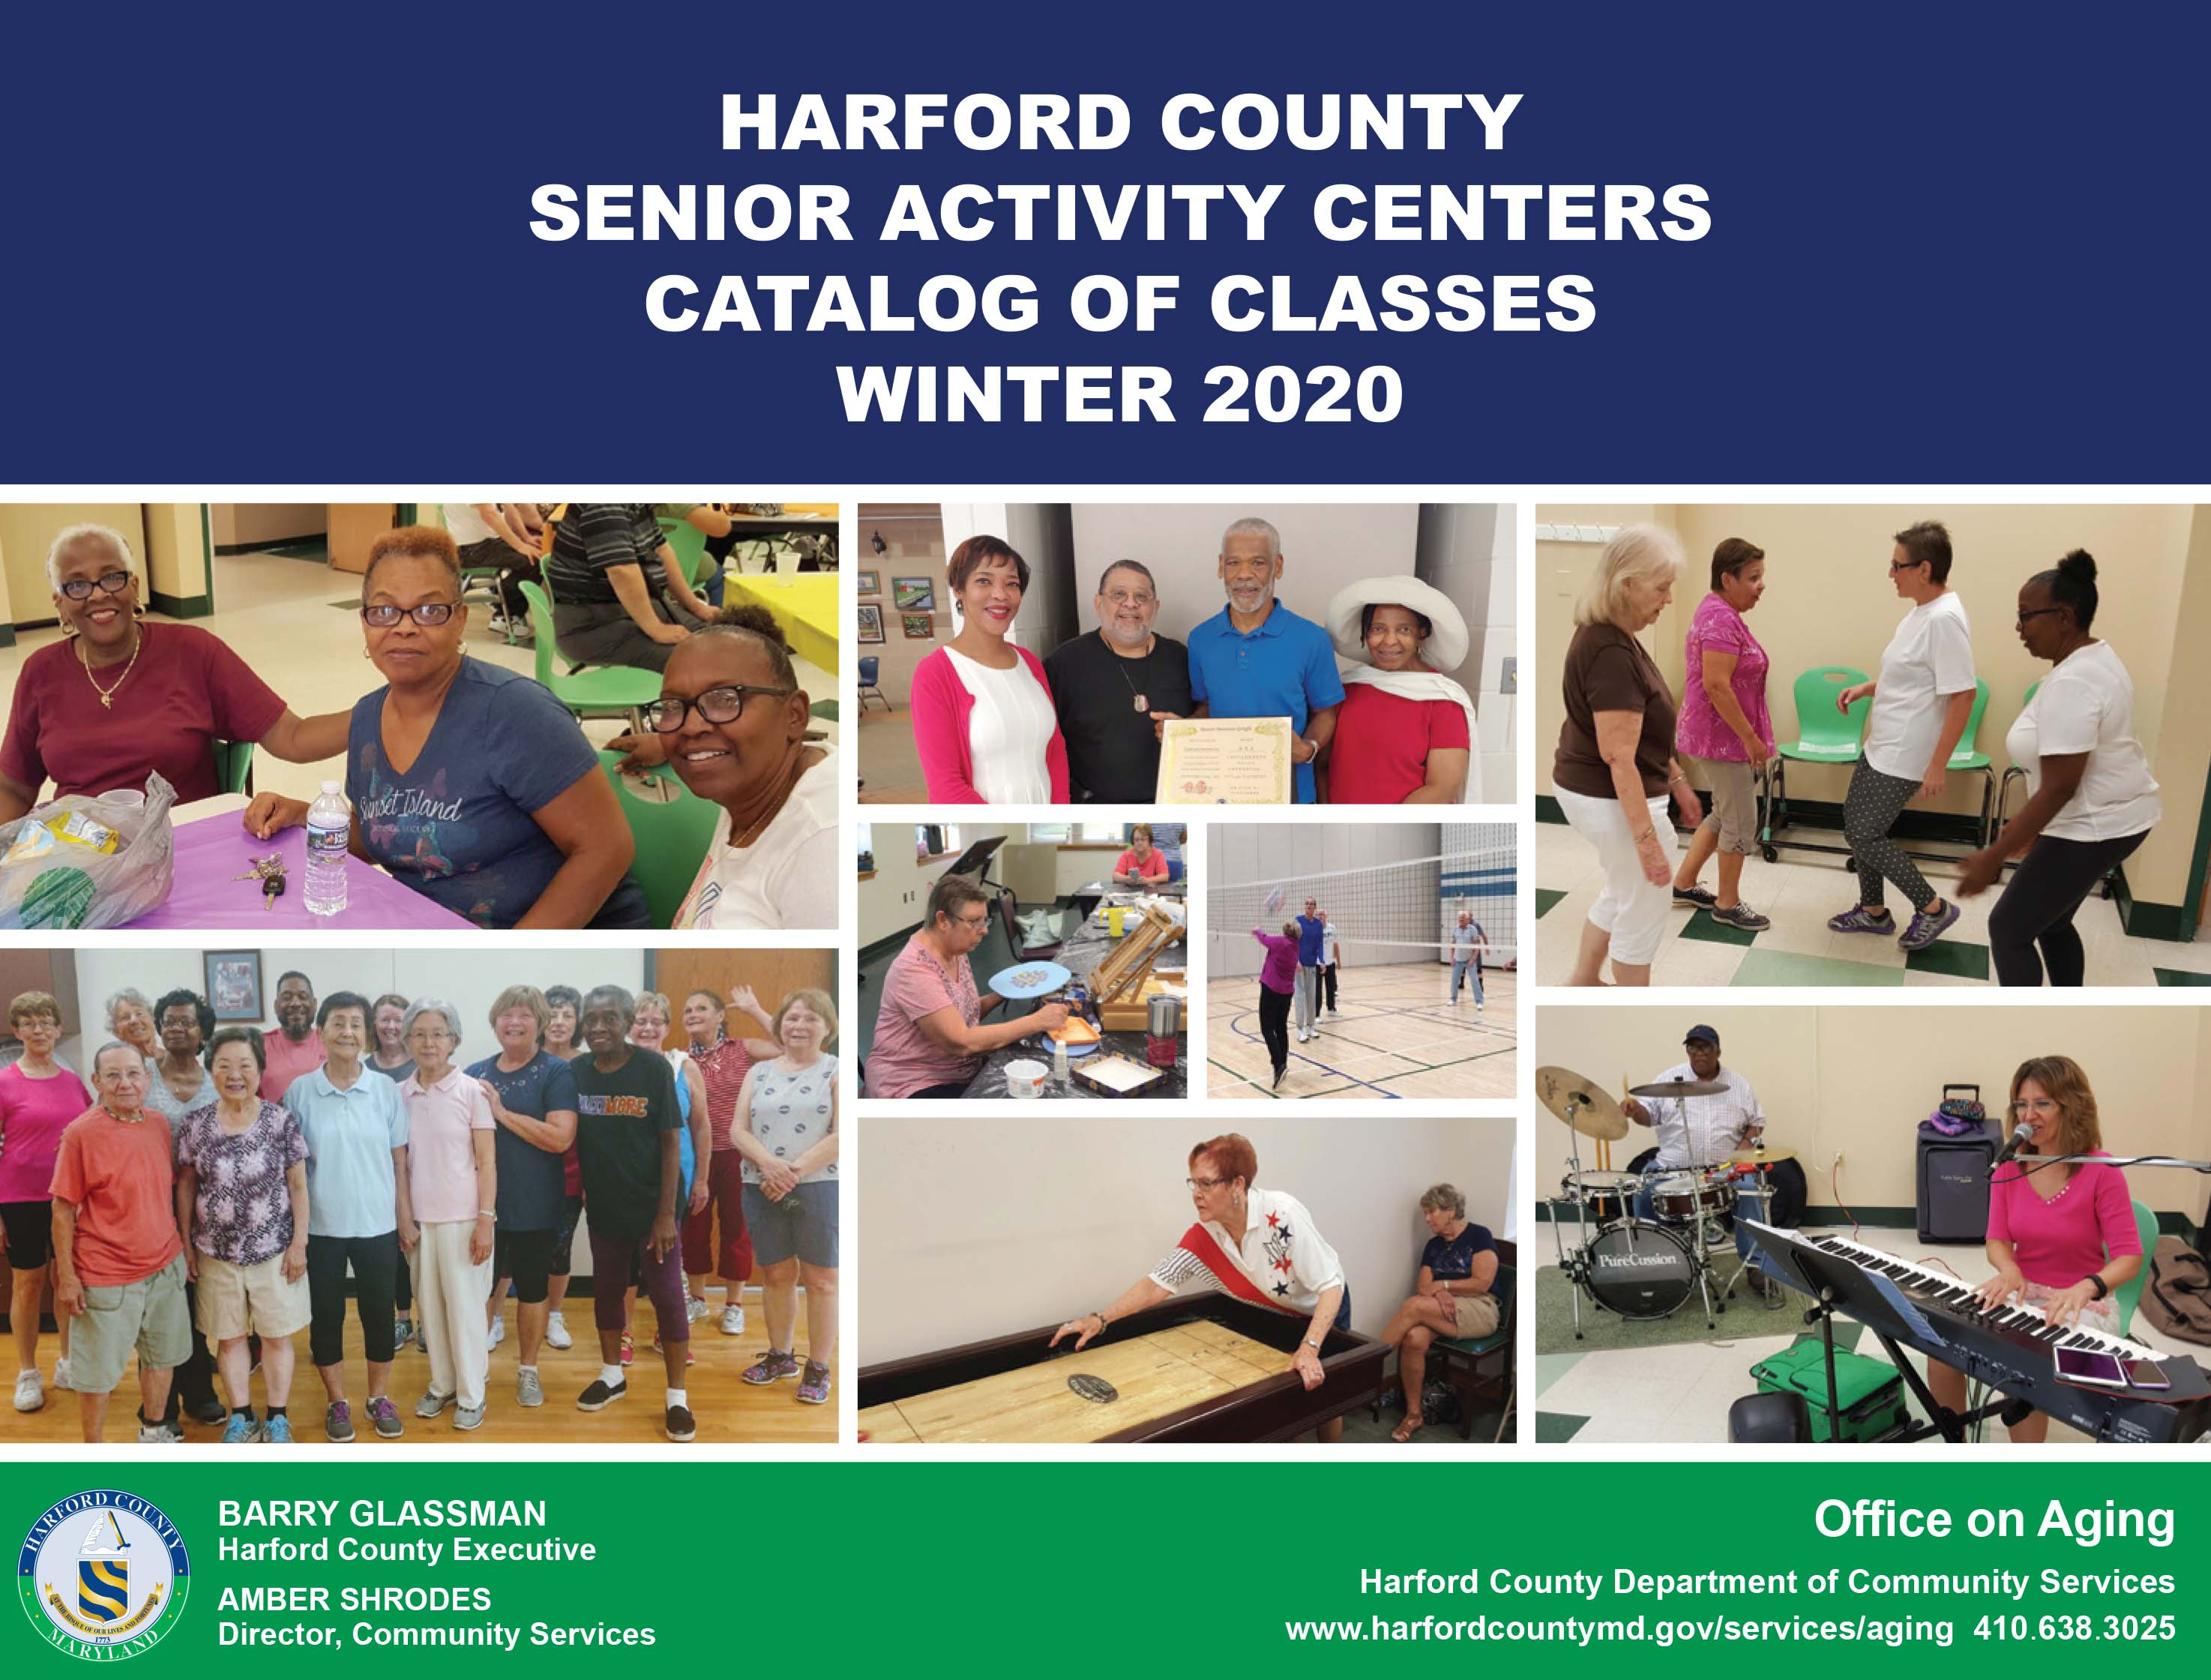 Senior Activity Center Catalog Winter 2020 button